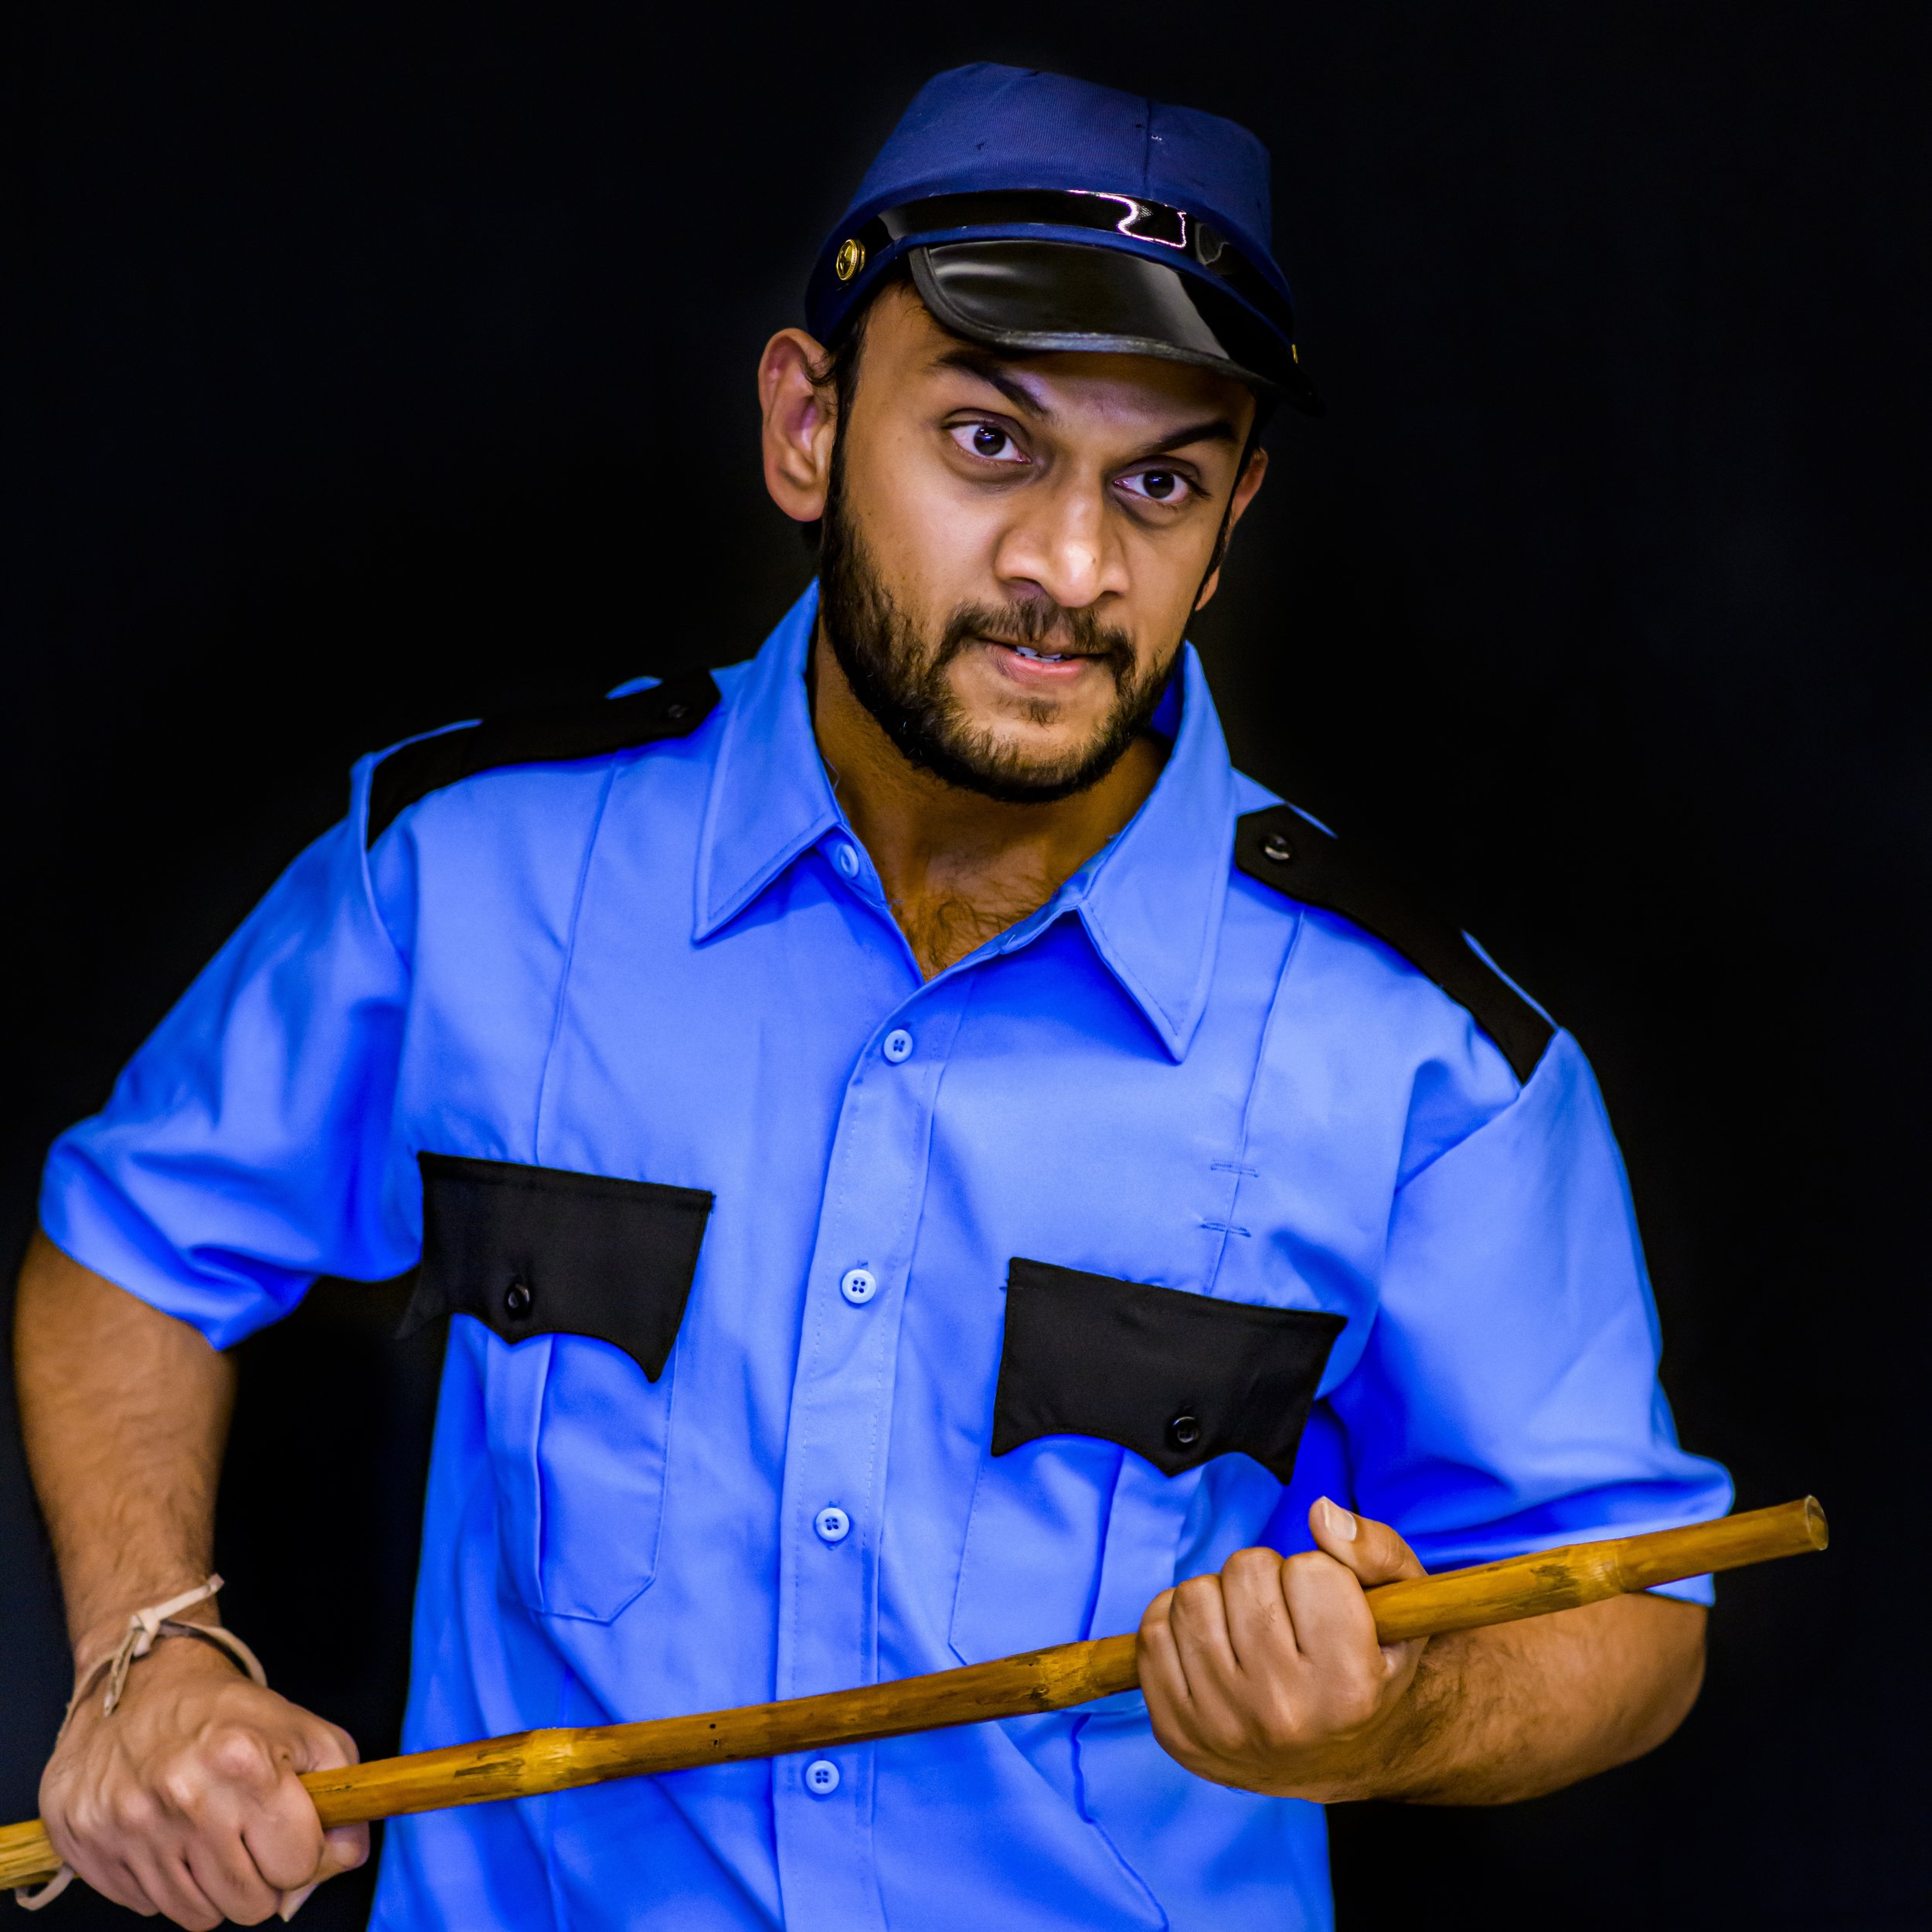 Guard - Protector of Wipro. Actually, just Wipro, Sarjapur campus, Building 23A, lobby.Played by Abhinay Rao